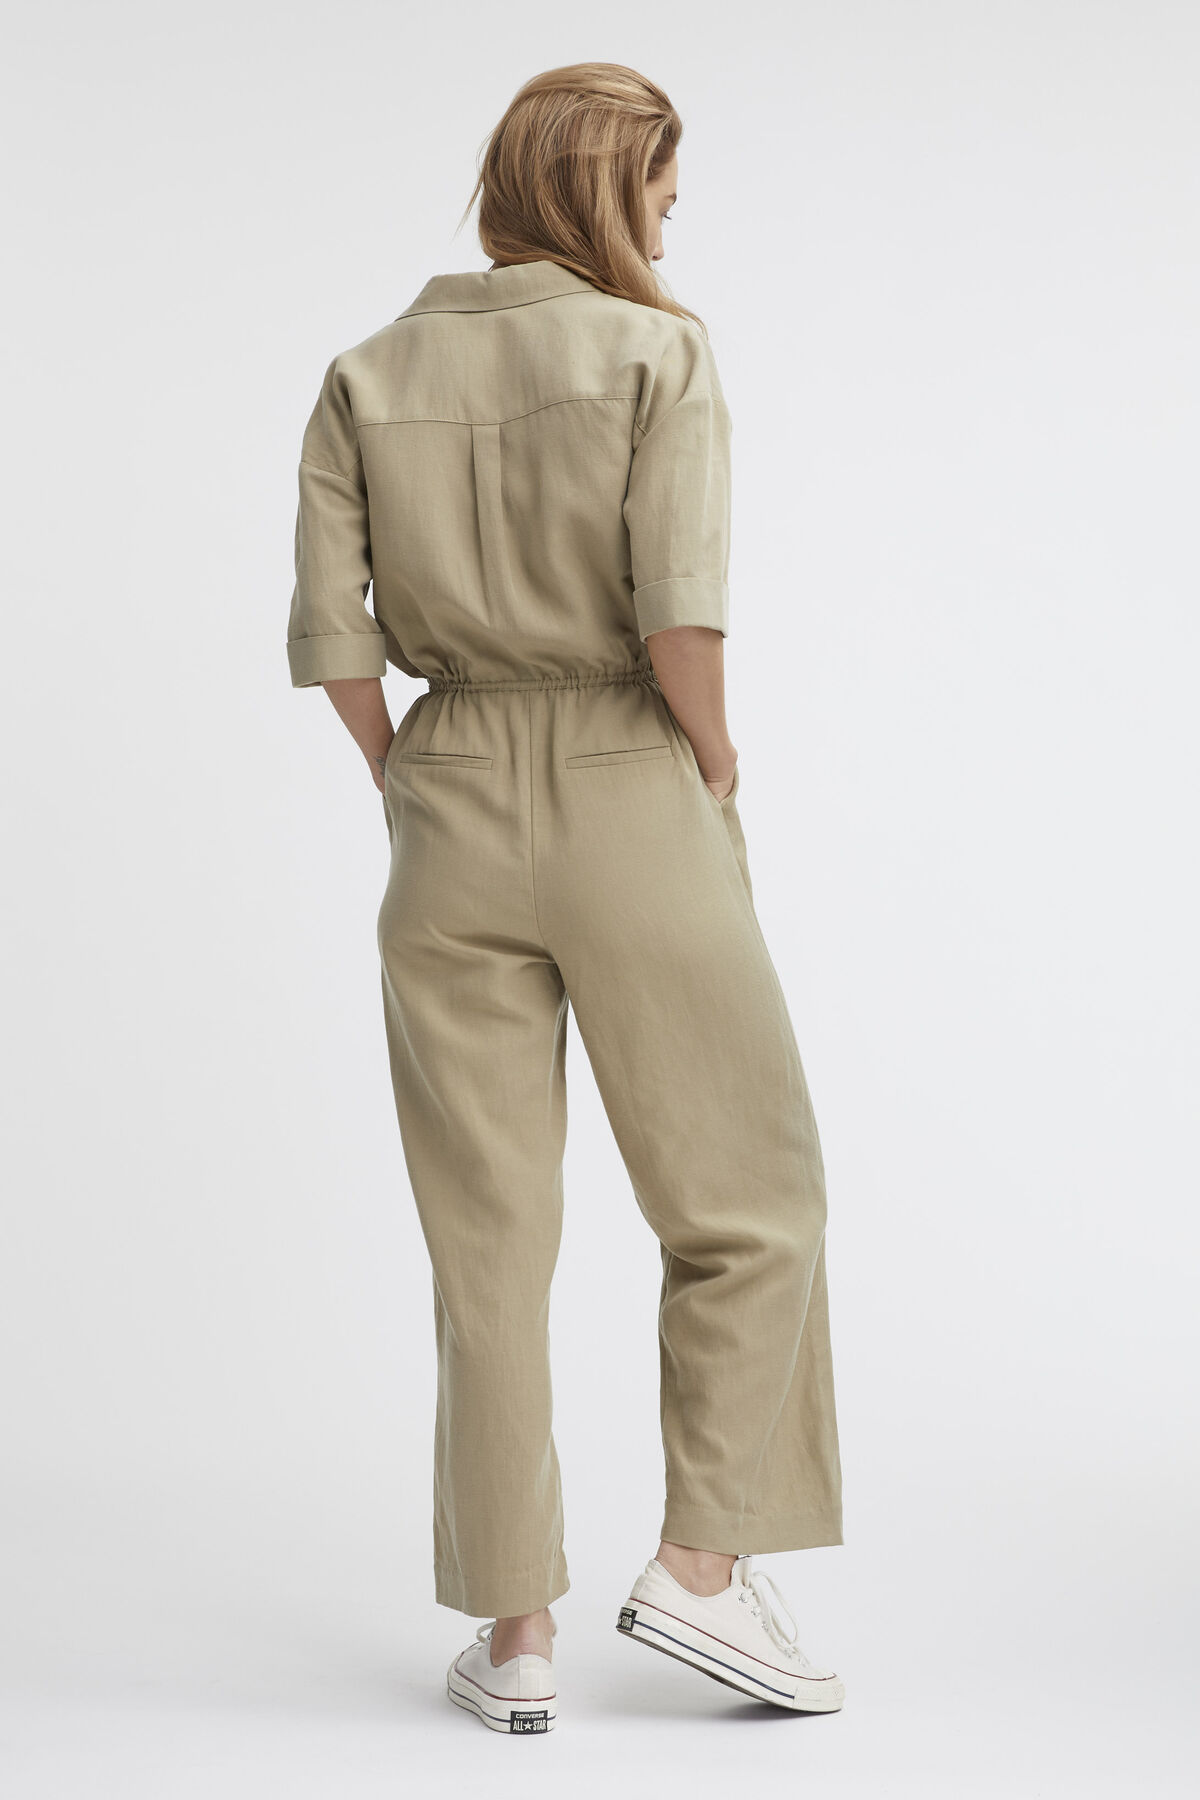 HEWITT JUMPSUIT Linen & Poplin Blend - Relaxed Fit